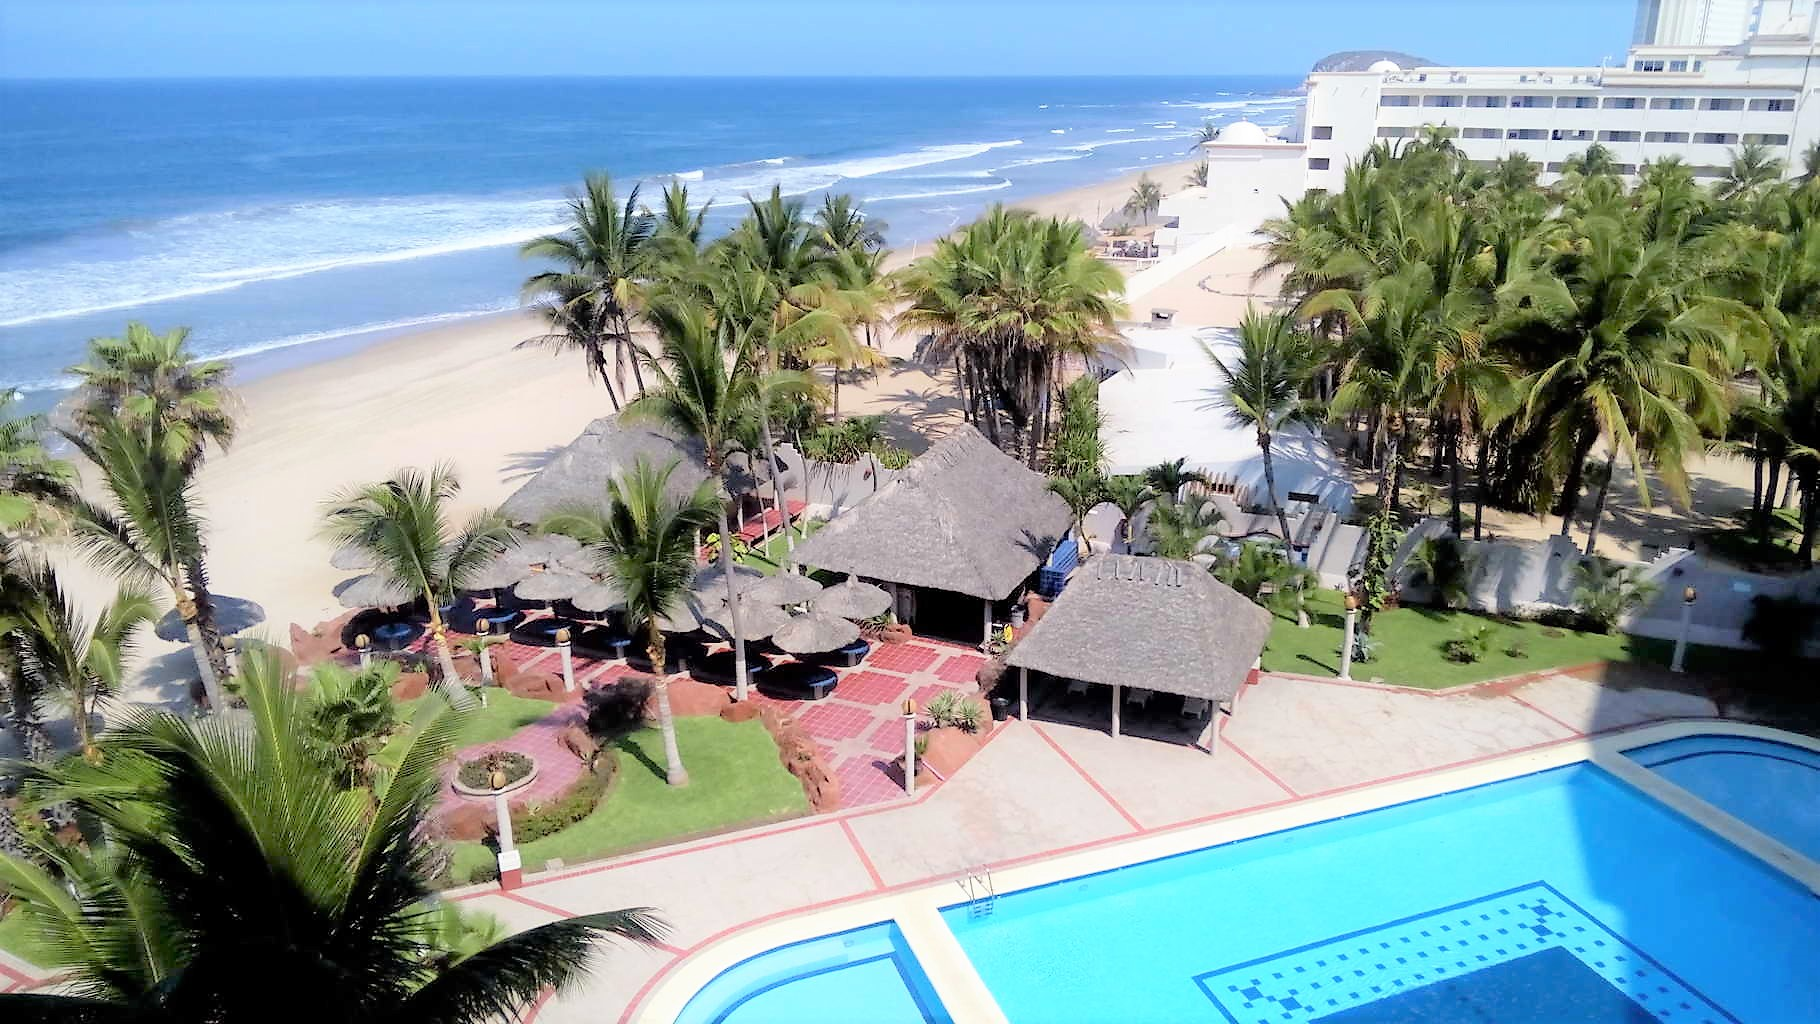 The most affordable beachfront condo in Mazatlan!